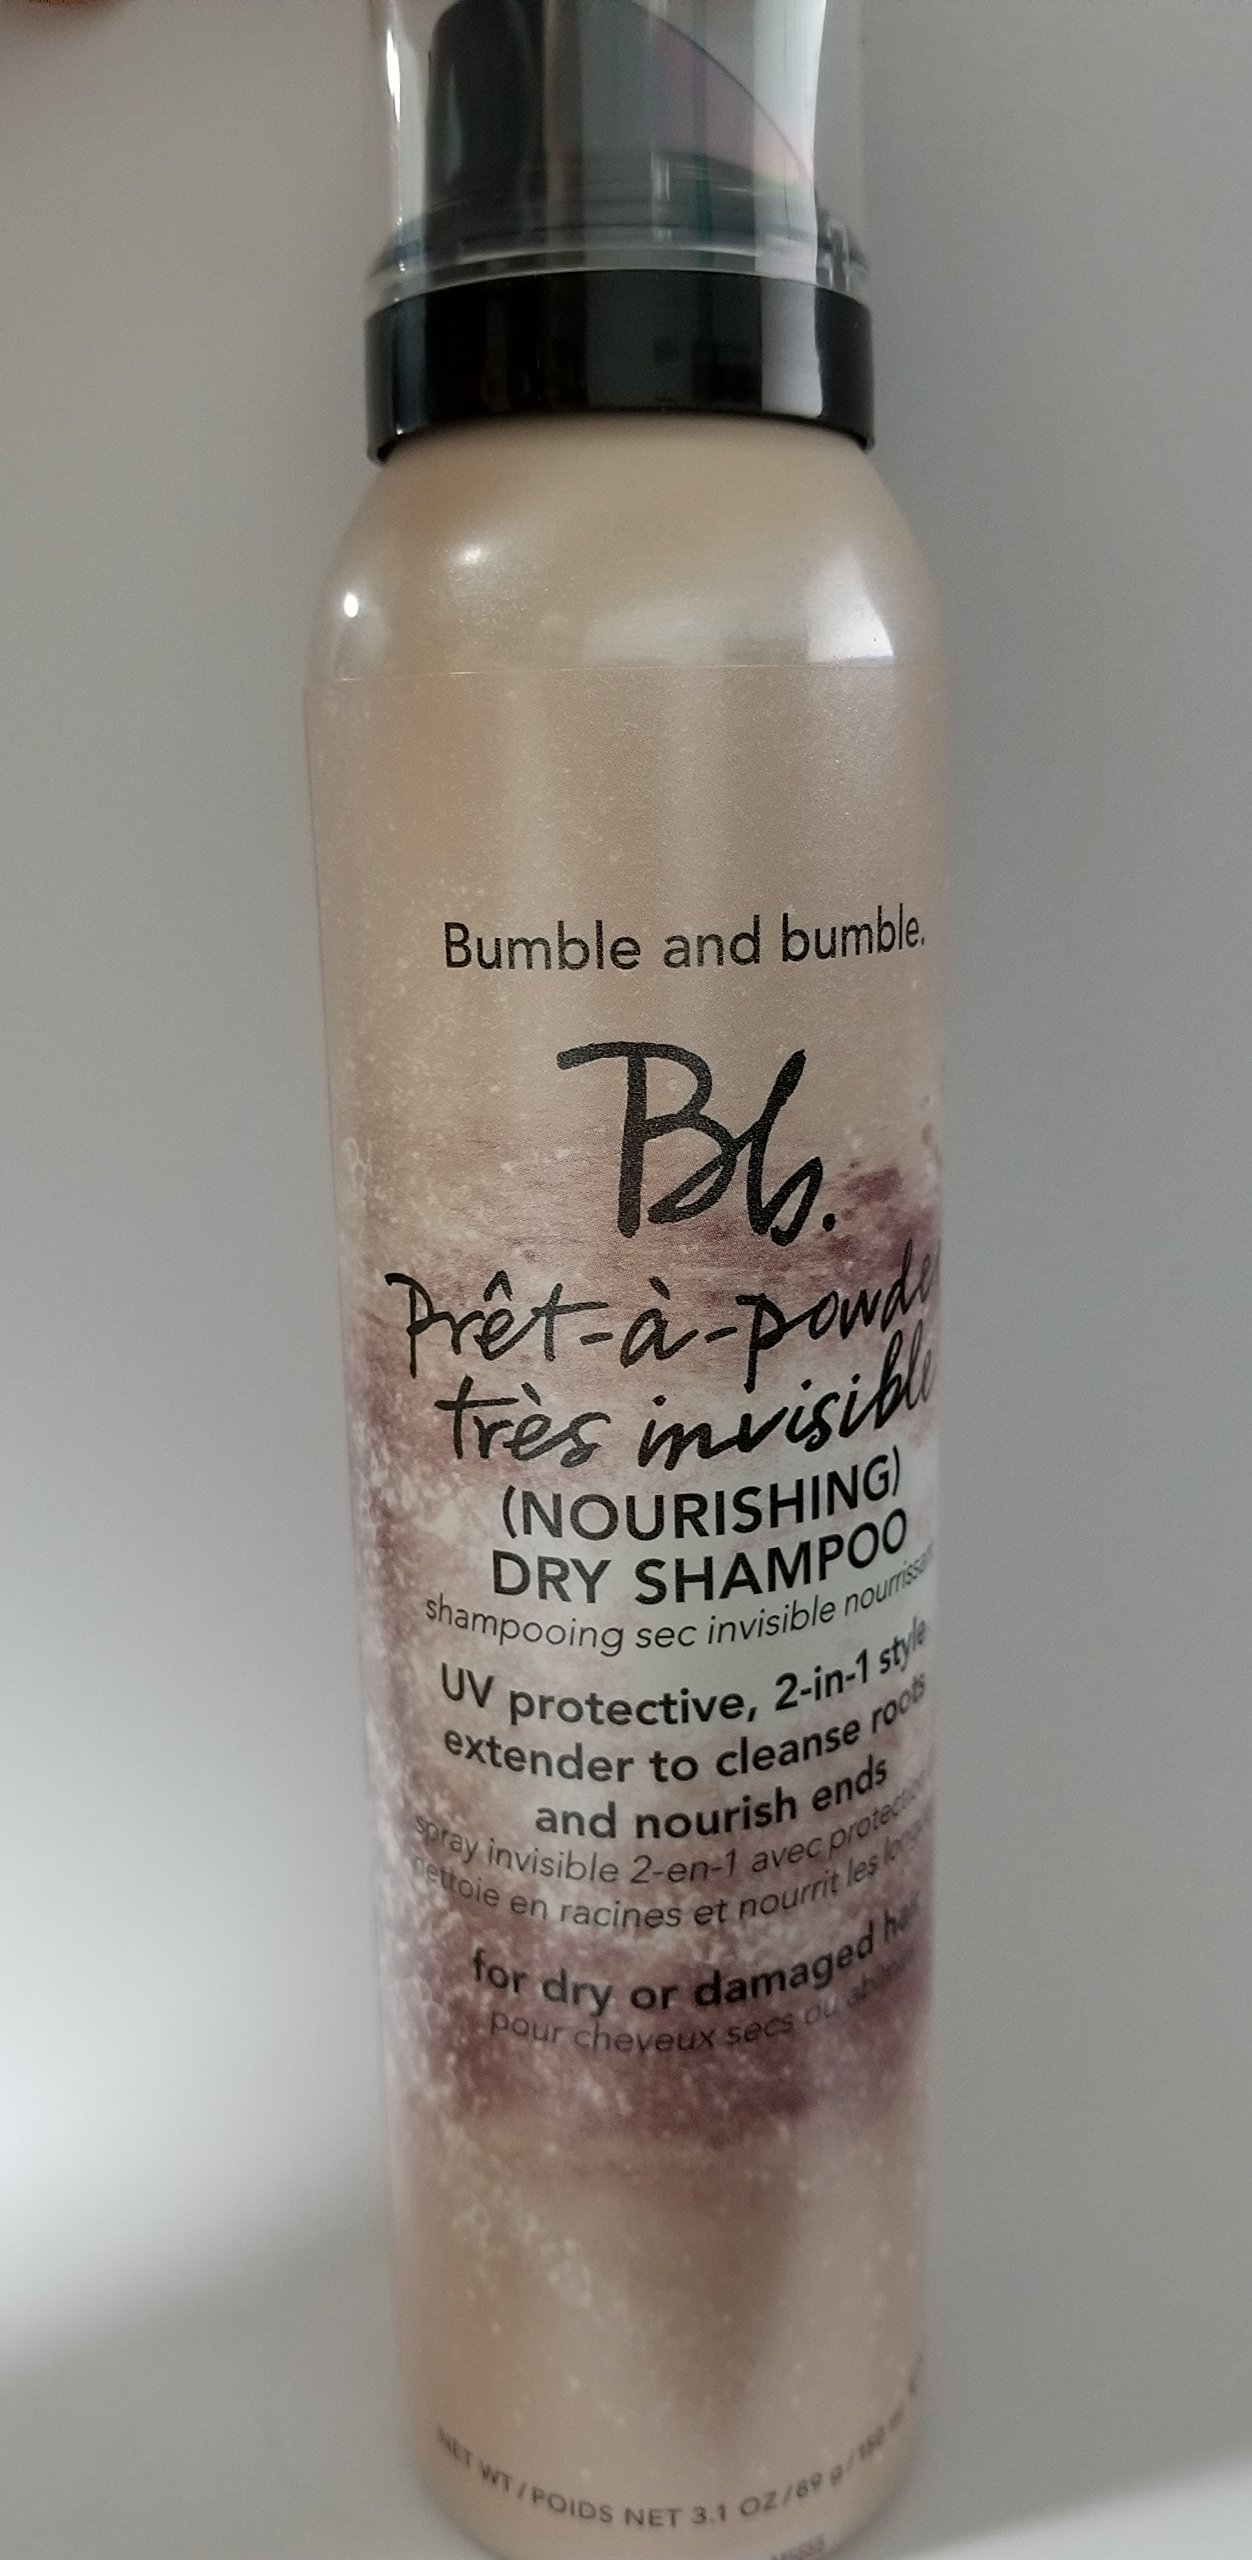 Bumble and Bumble PRET A Powder Dry Shampoo Nourishing Dry Damaged Hair 3.1 oz